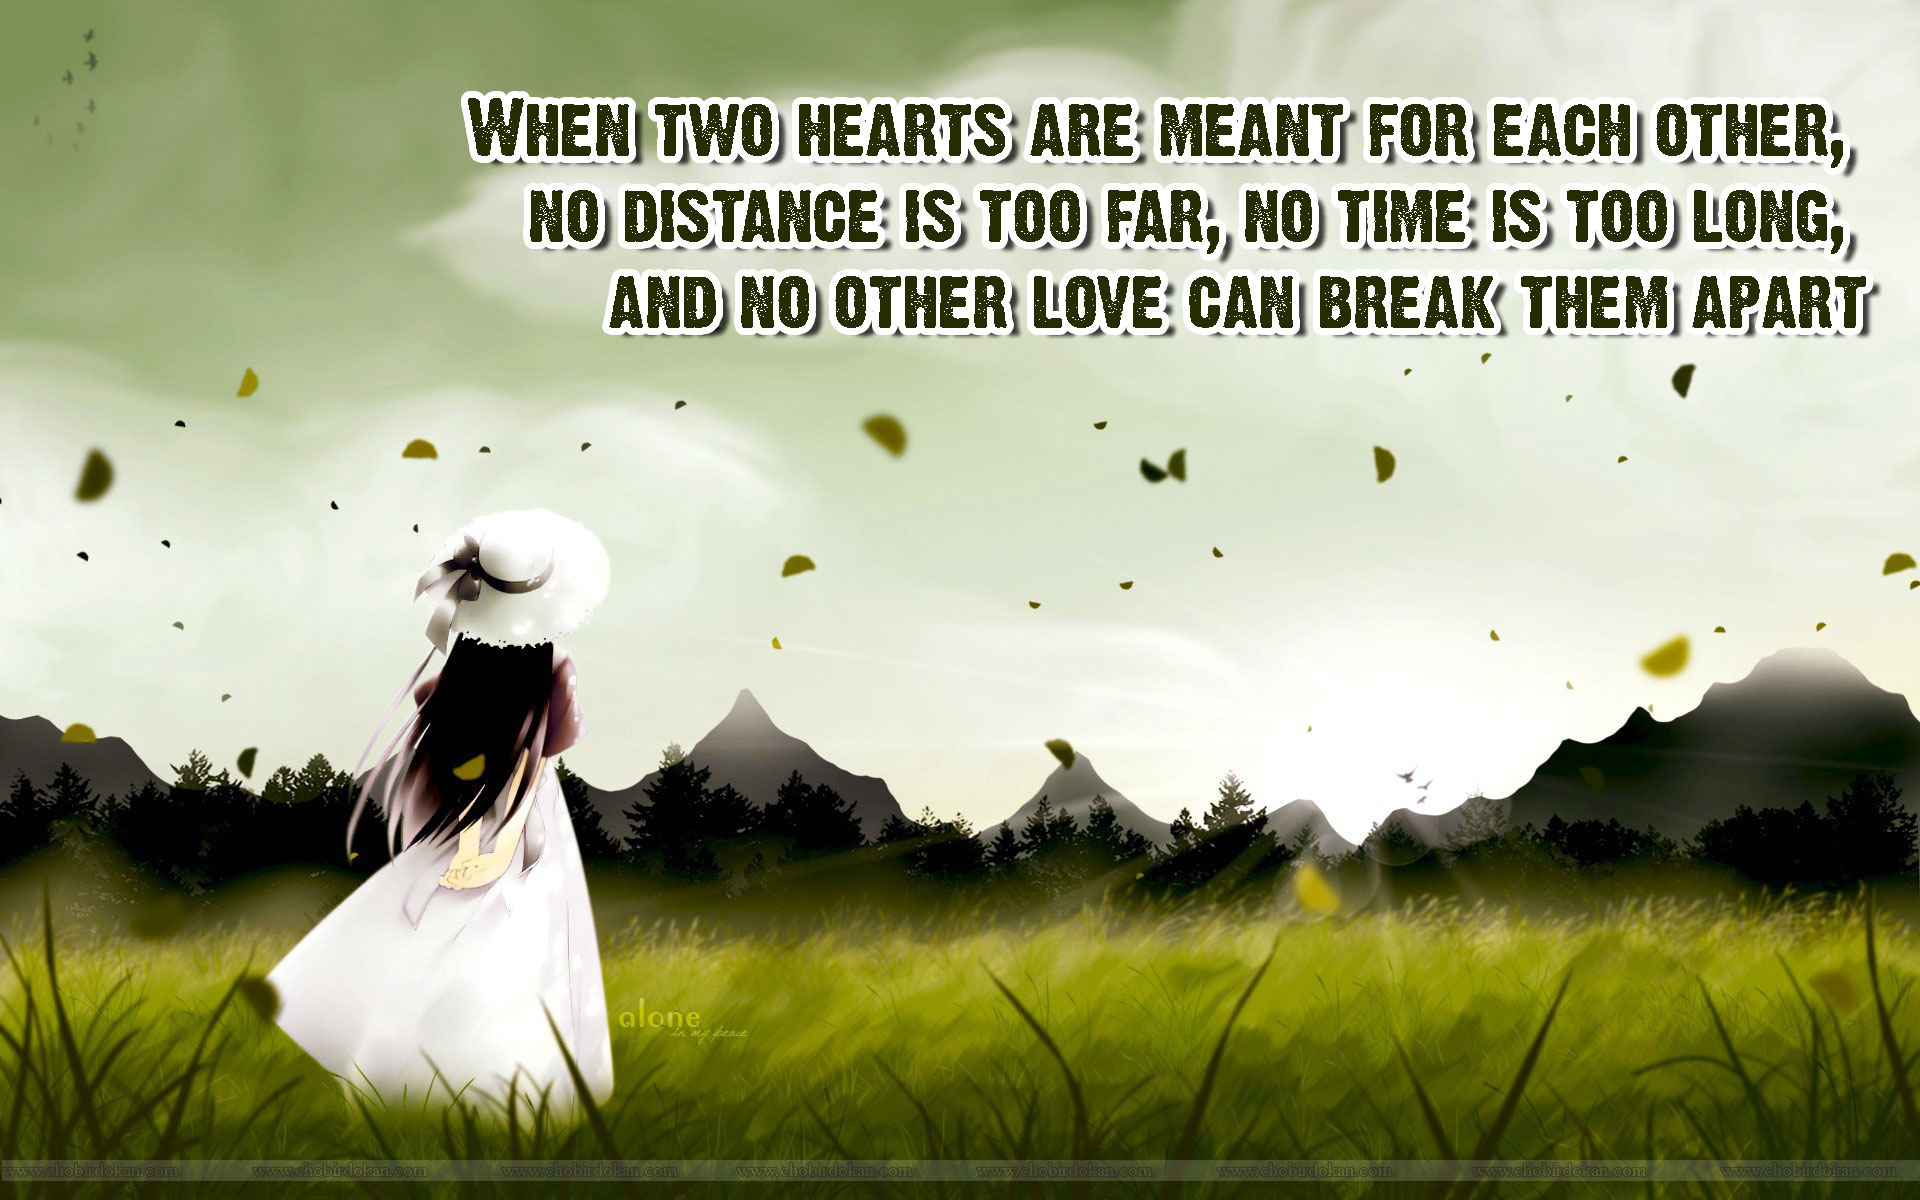 Bonding Quotes Cute Long Distance Relationship Quotes With Hd Images